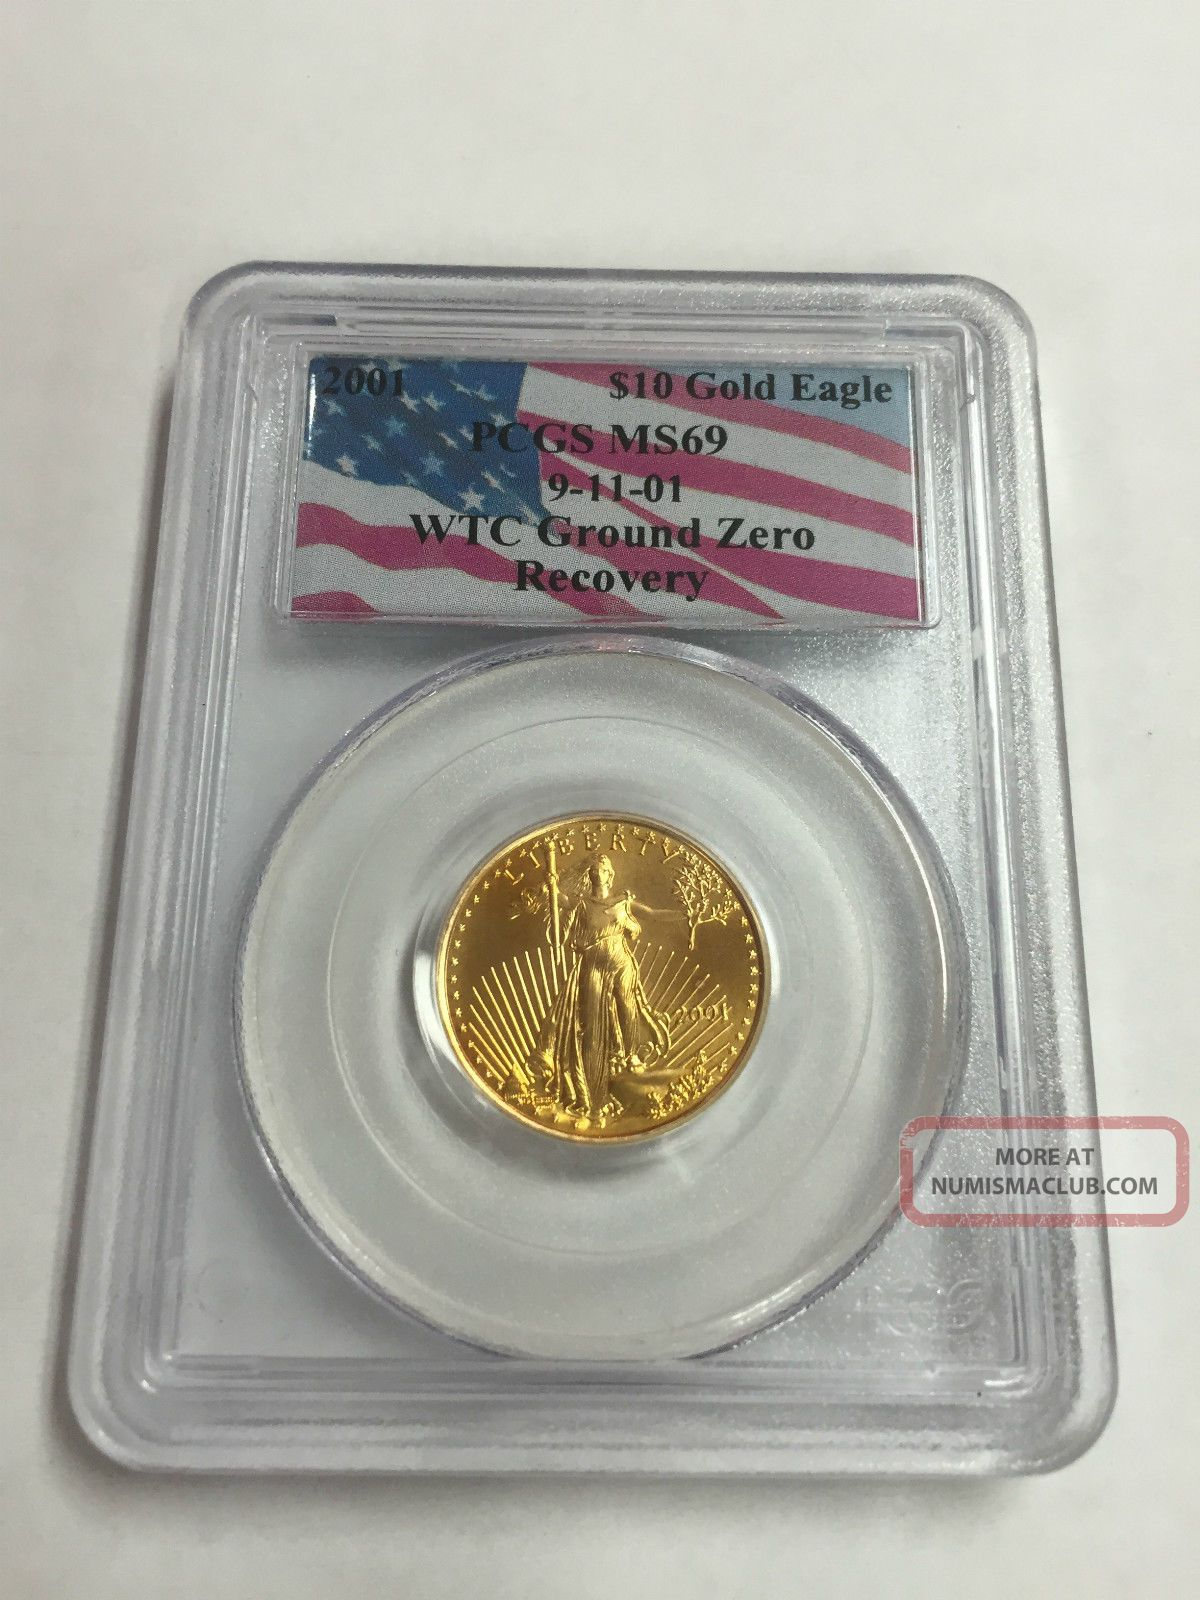 2001 10 Gold American Eagle 9 11 01 Wtc Ground Zero Recovery Pcgs Ms69